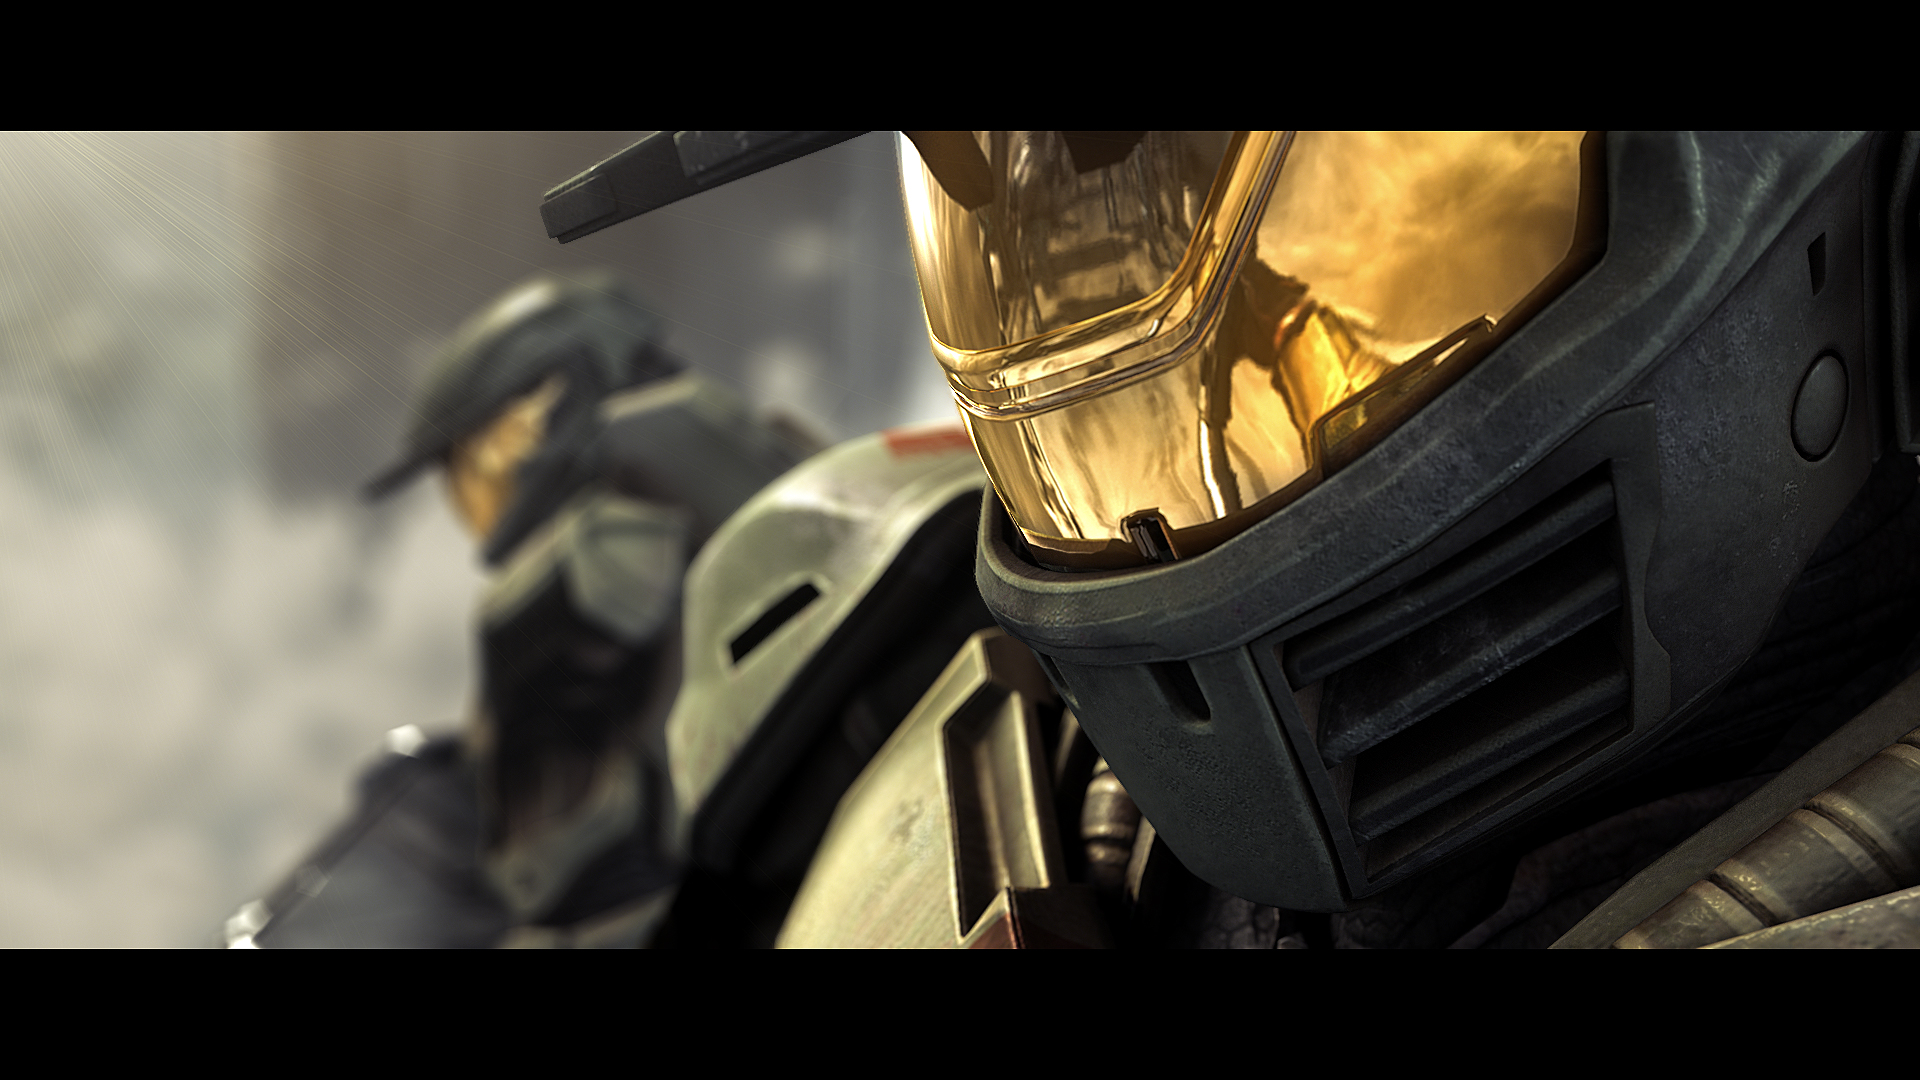 Download Halo Master Chief wallpaper background [1920x1080]   45+